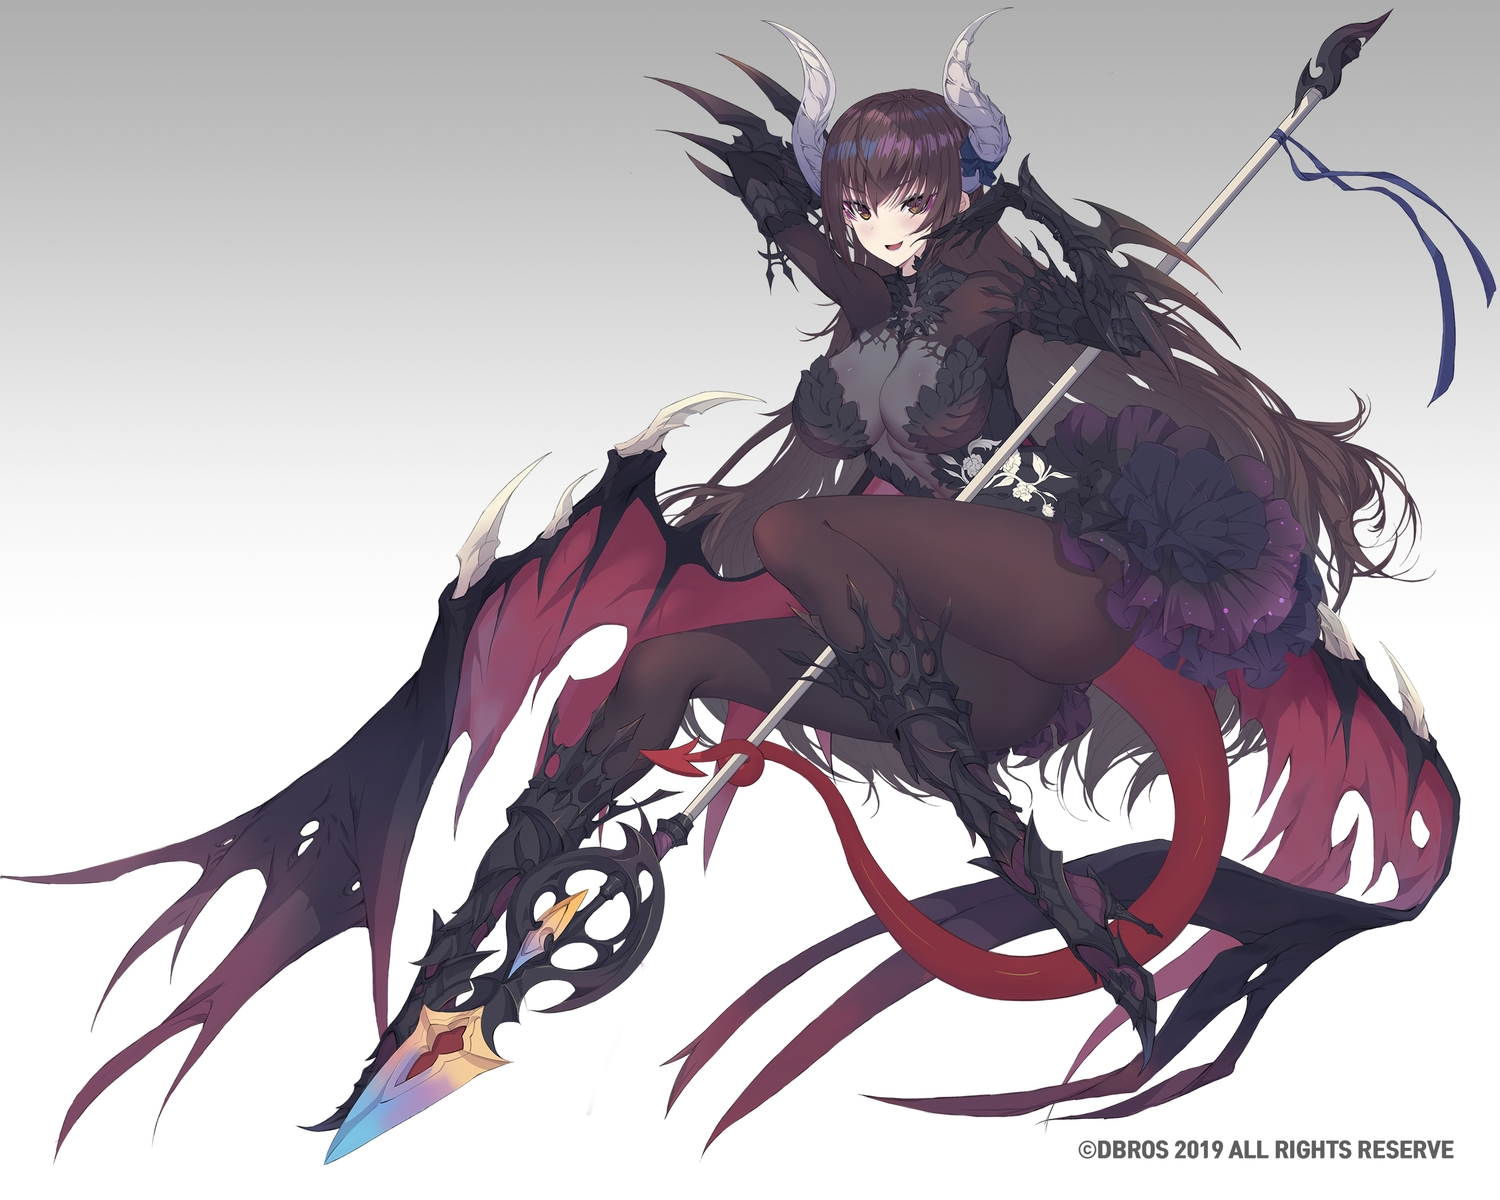 armor breasts brown_eyes brown_hair cleavage demon dress elbow_gloves gloves gradient horns long_hair original pantyhose rodway spear succubus tail weapon wings